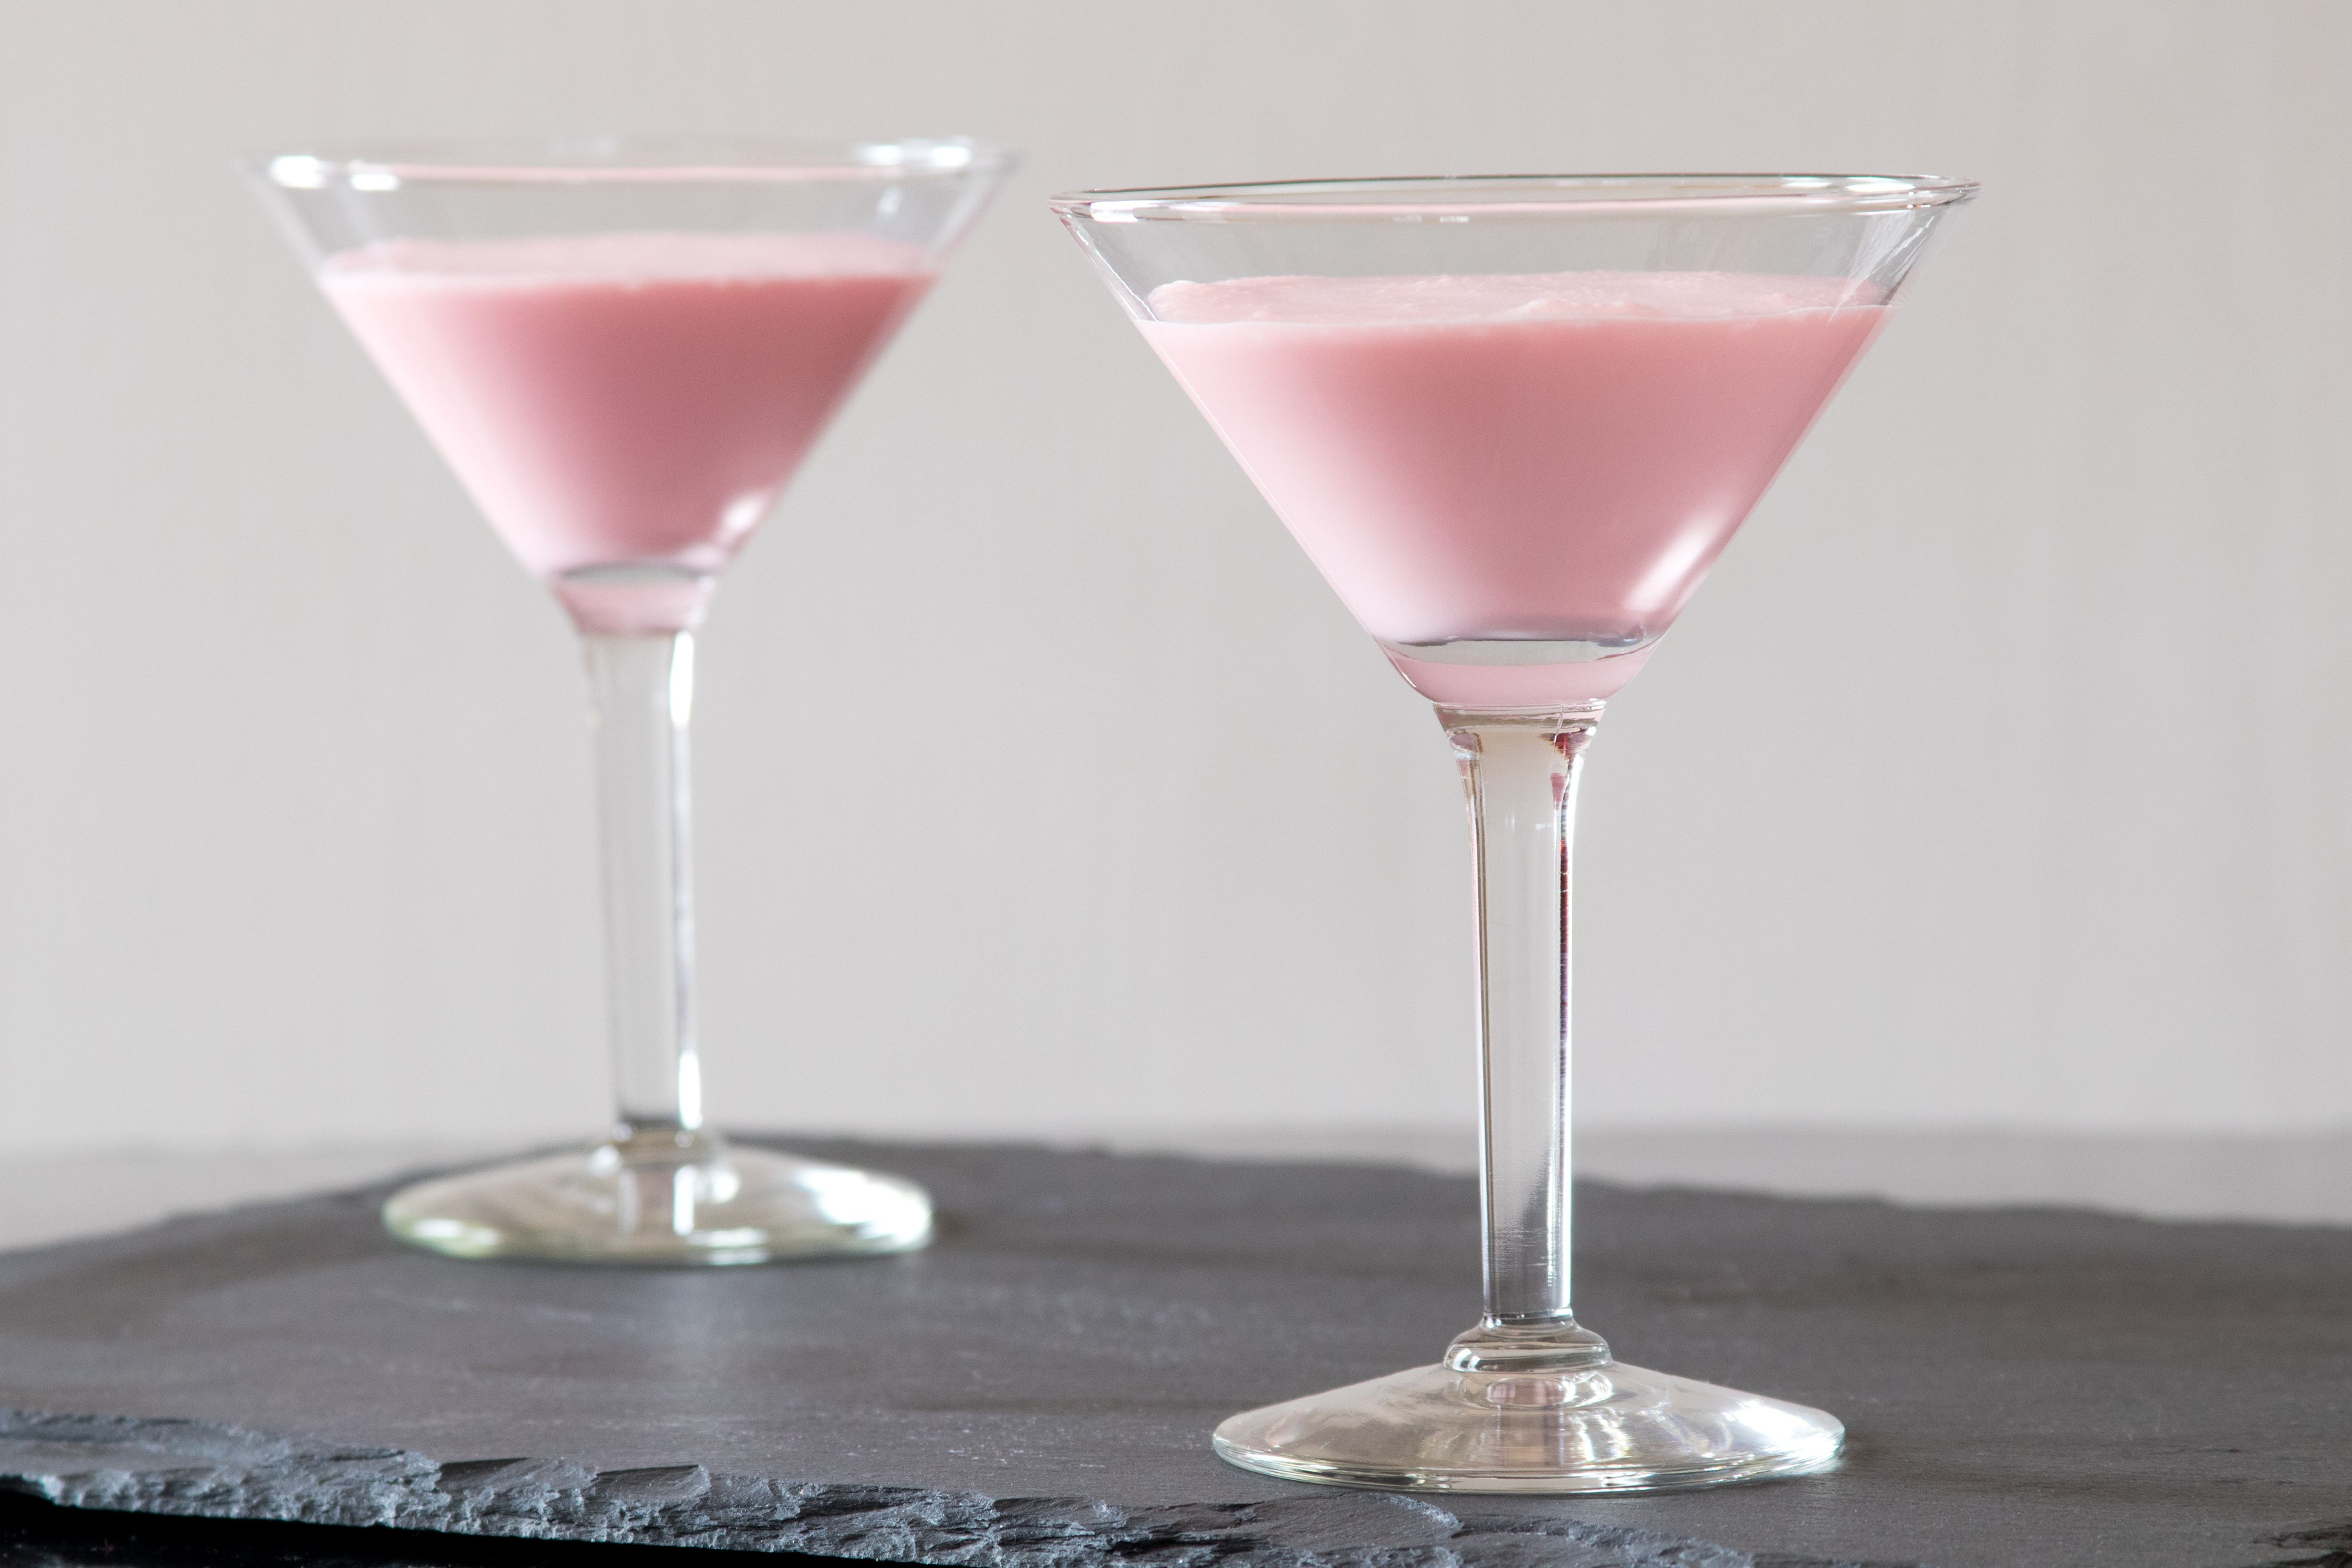 Sweet and Creamy, Enjoy the Angel's Delight Cocktail